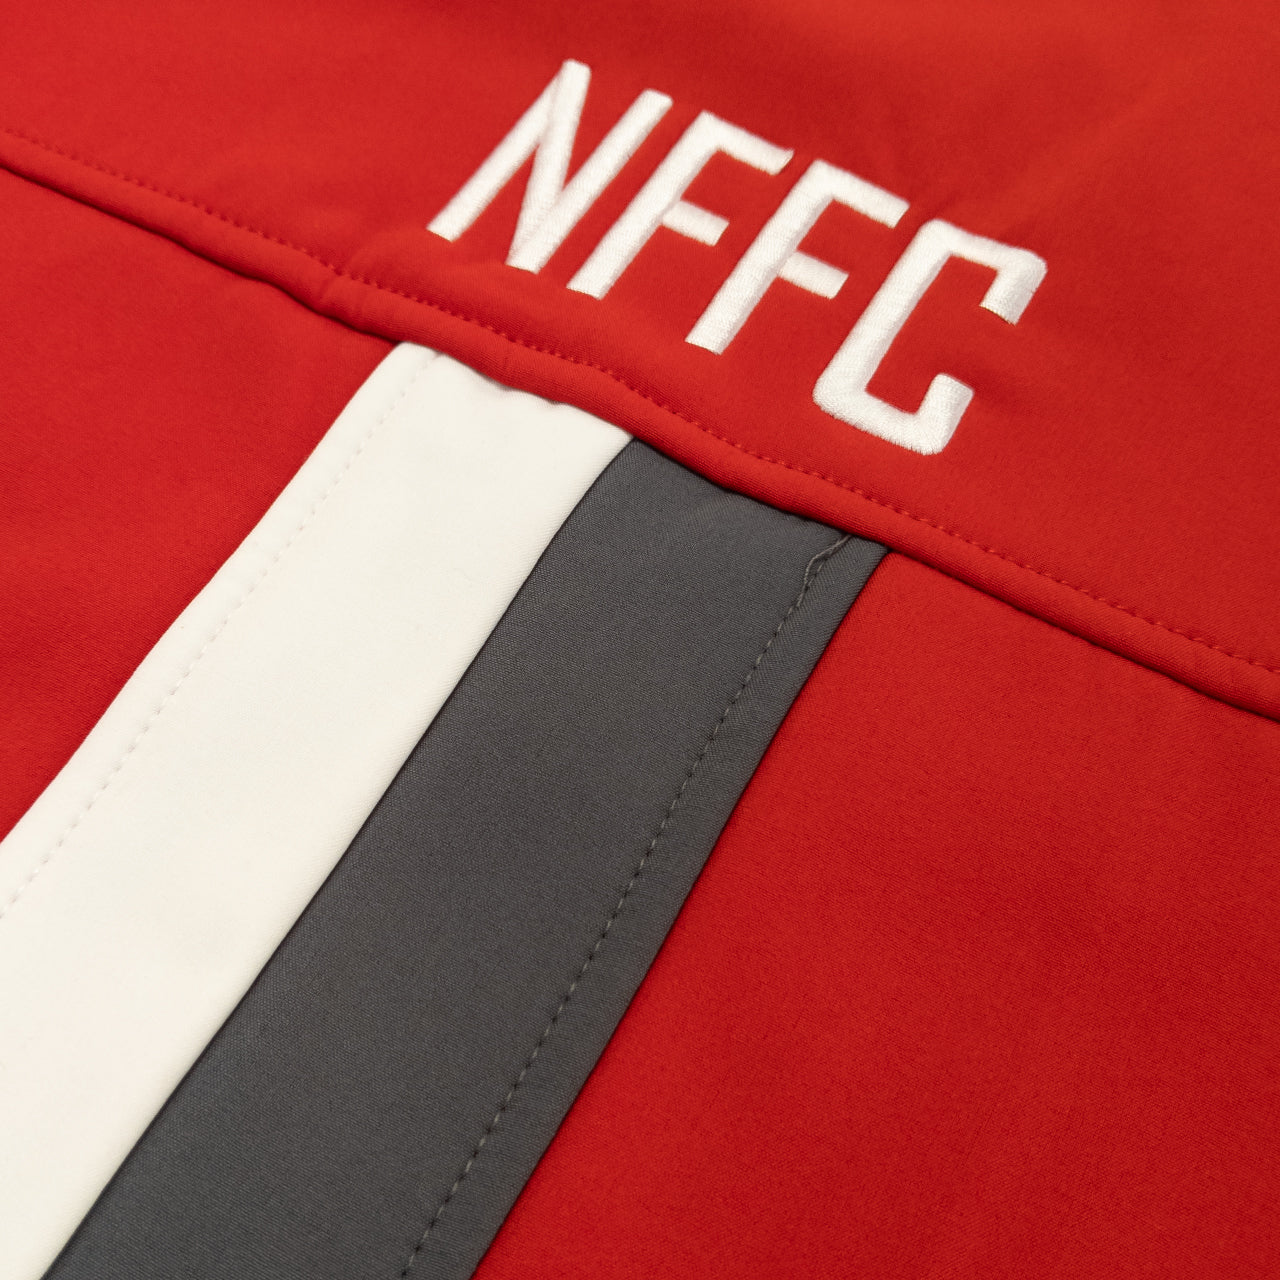 NFFC Junior Red Player Softshell Jacket 19/20